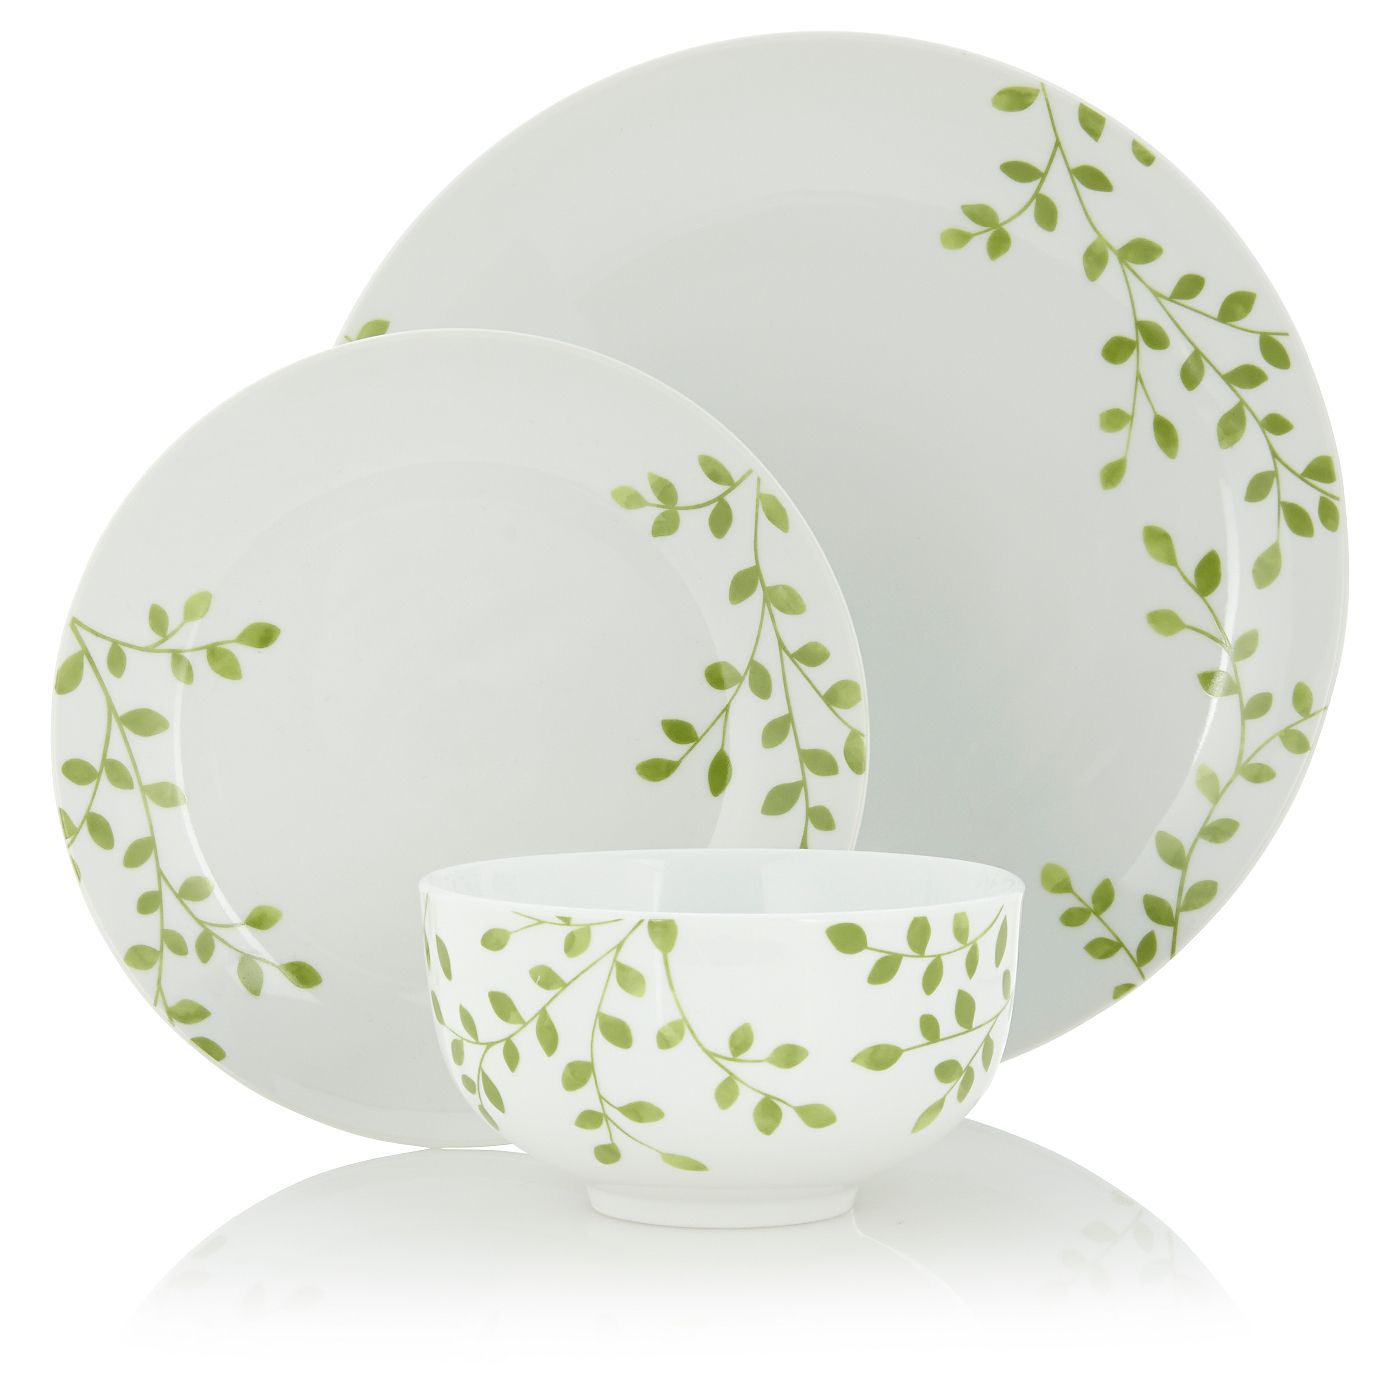 George Home Orchard Dinner Set 12 Piece Dinnerware Asda Direct George Home Dinner Sets Tableware